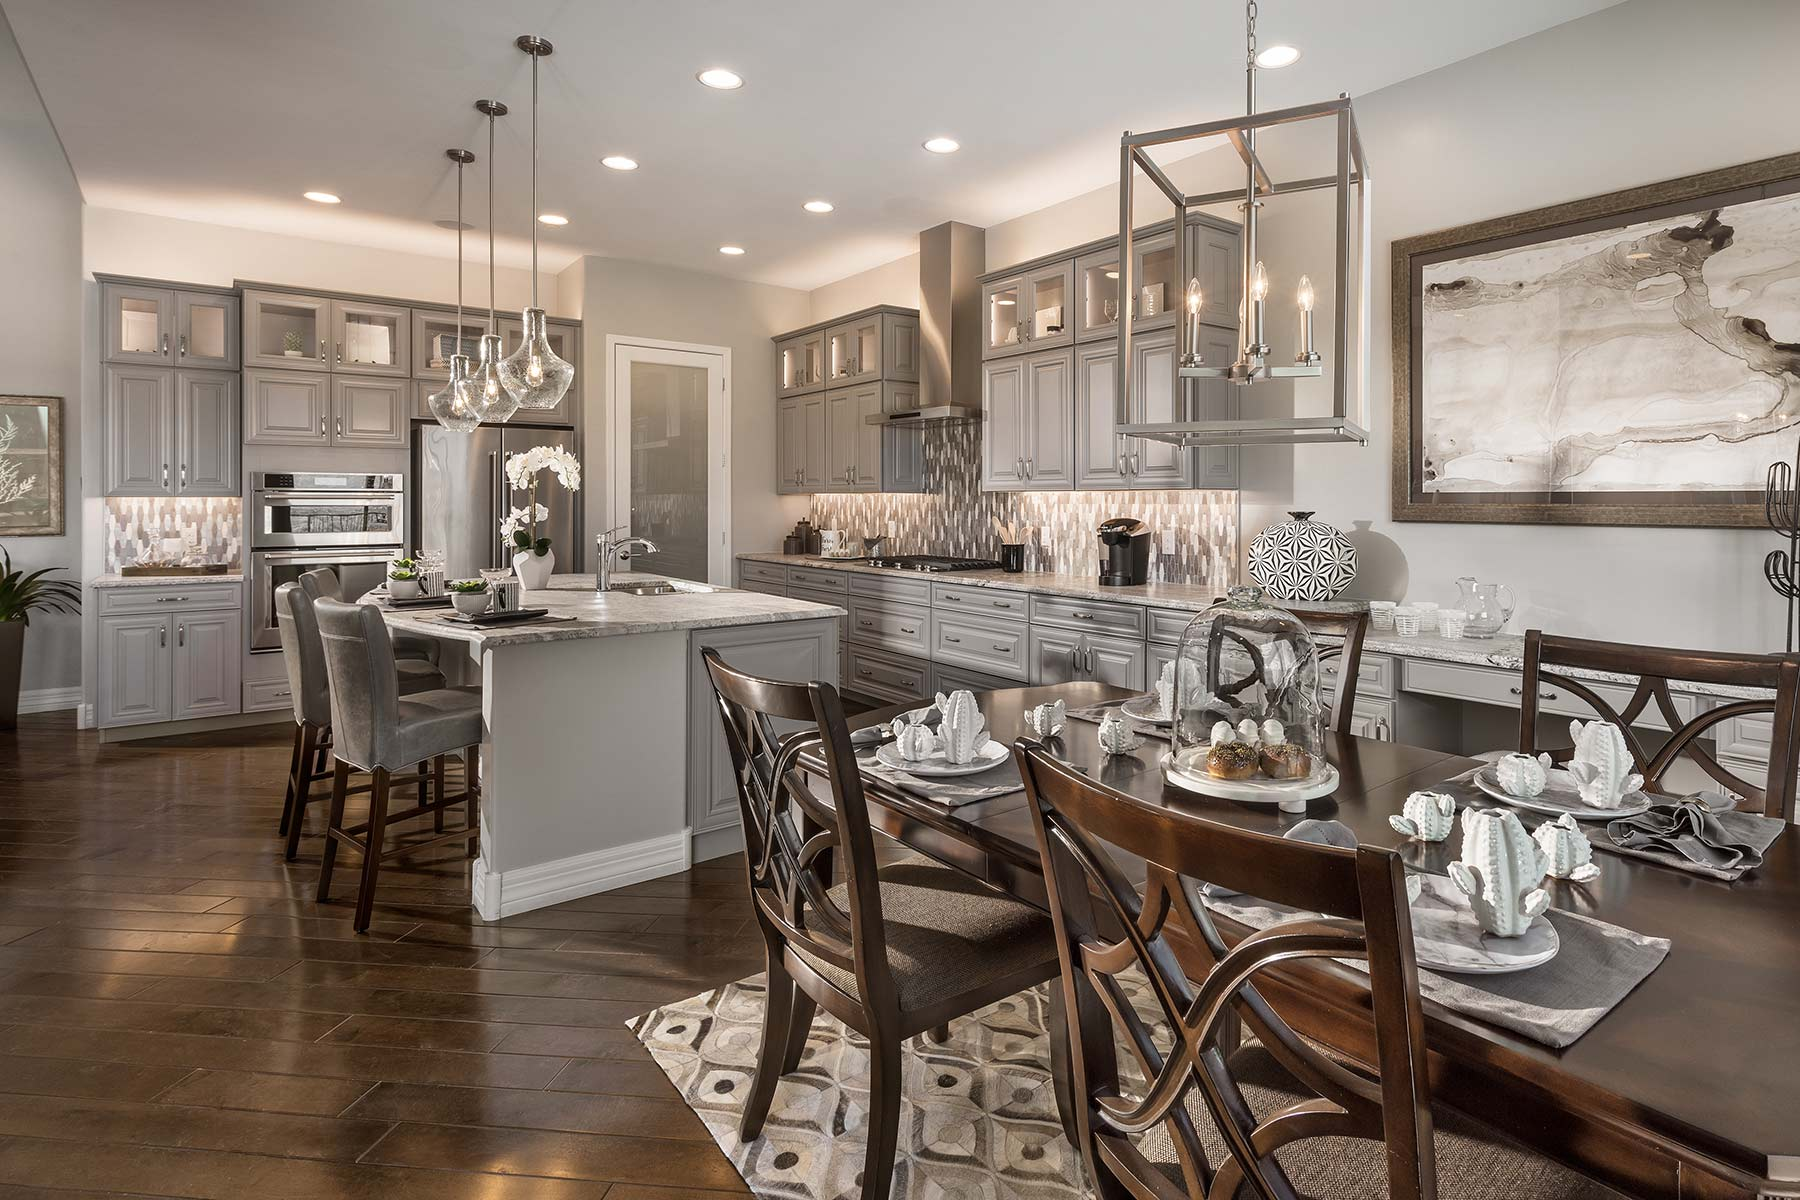 Patina Plan Kitchen at Alterra at Vistoso Trails in Oro Valley Arizona by Mattamy Homes